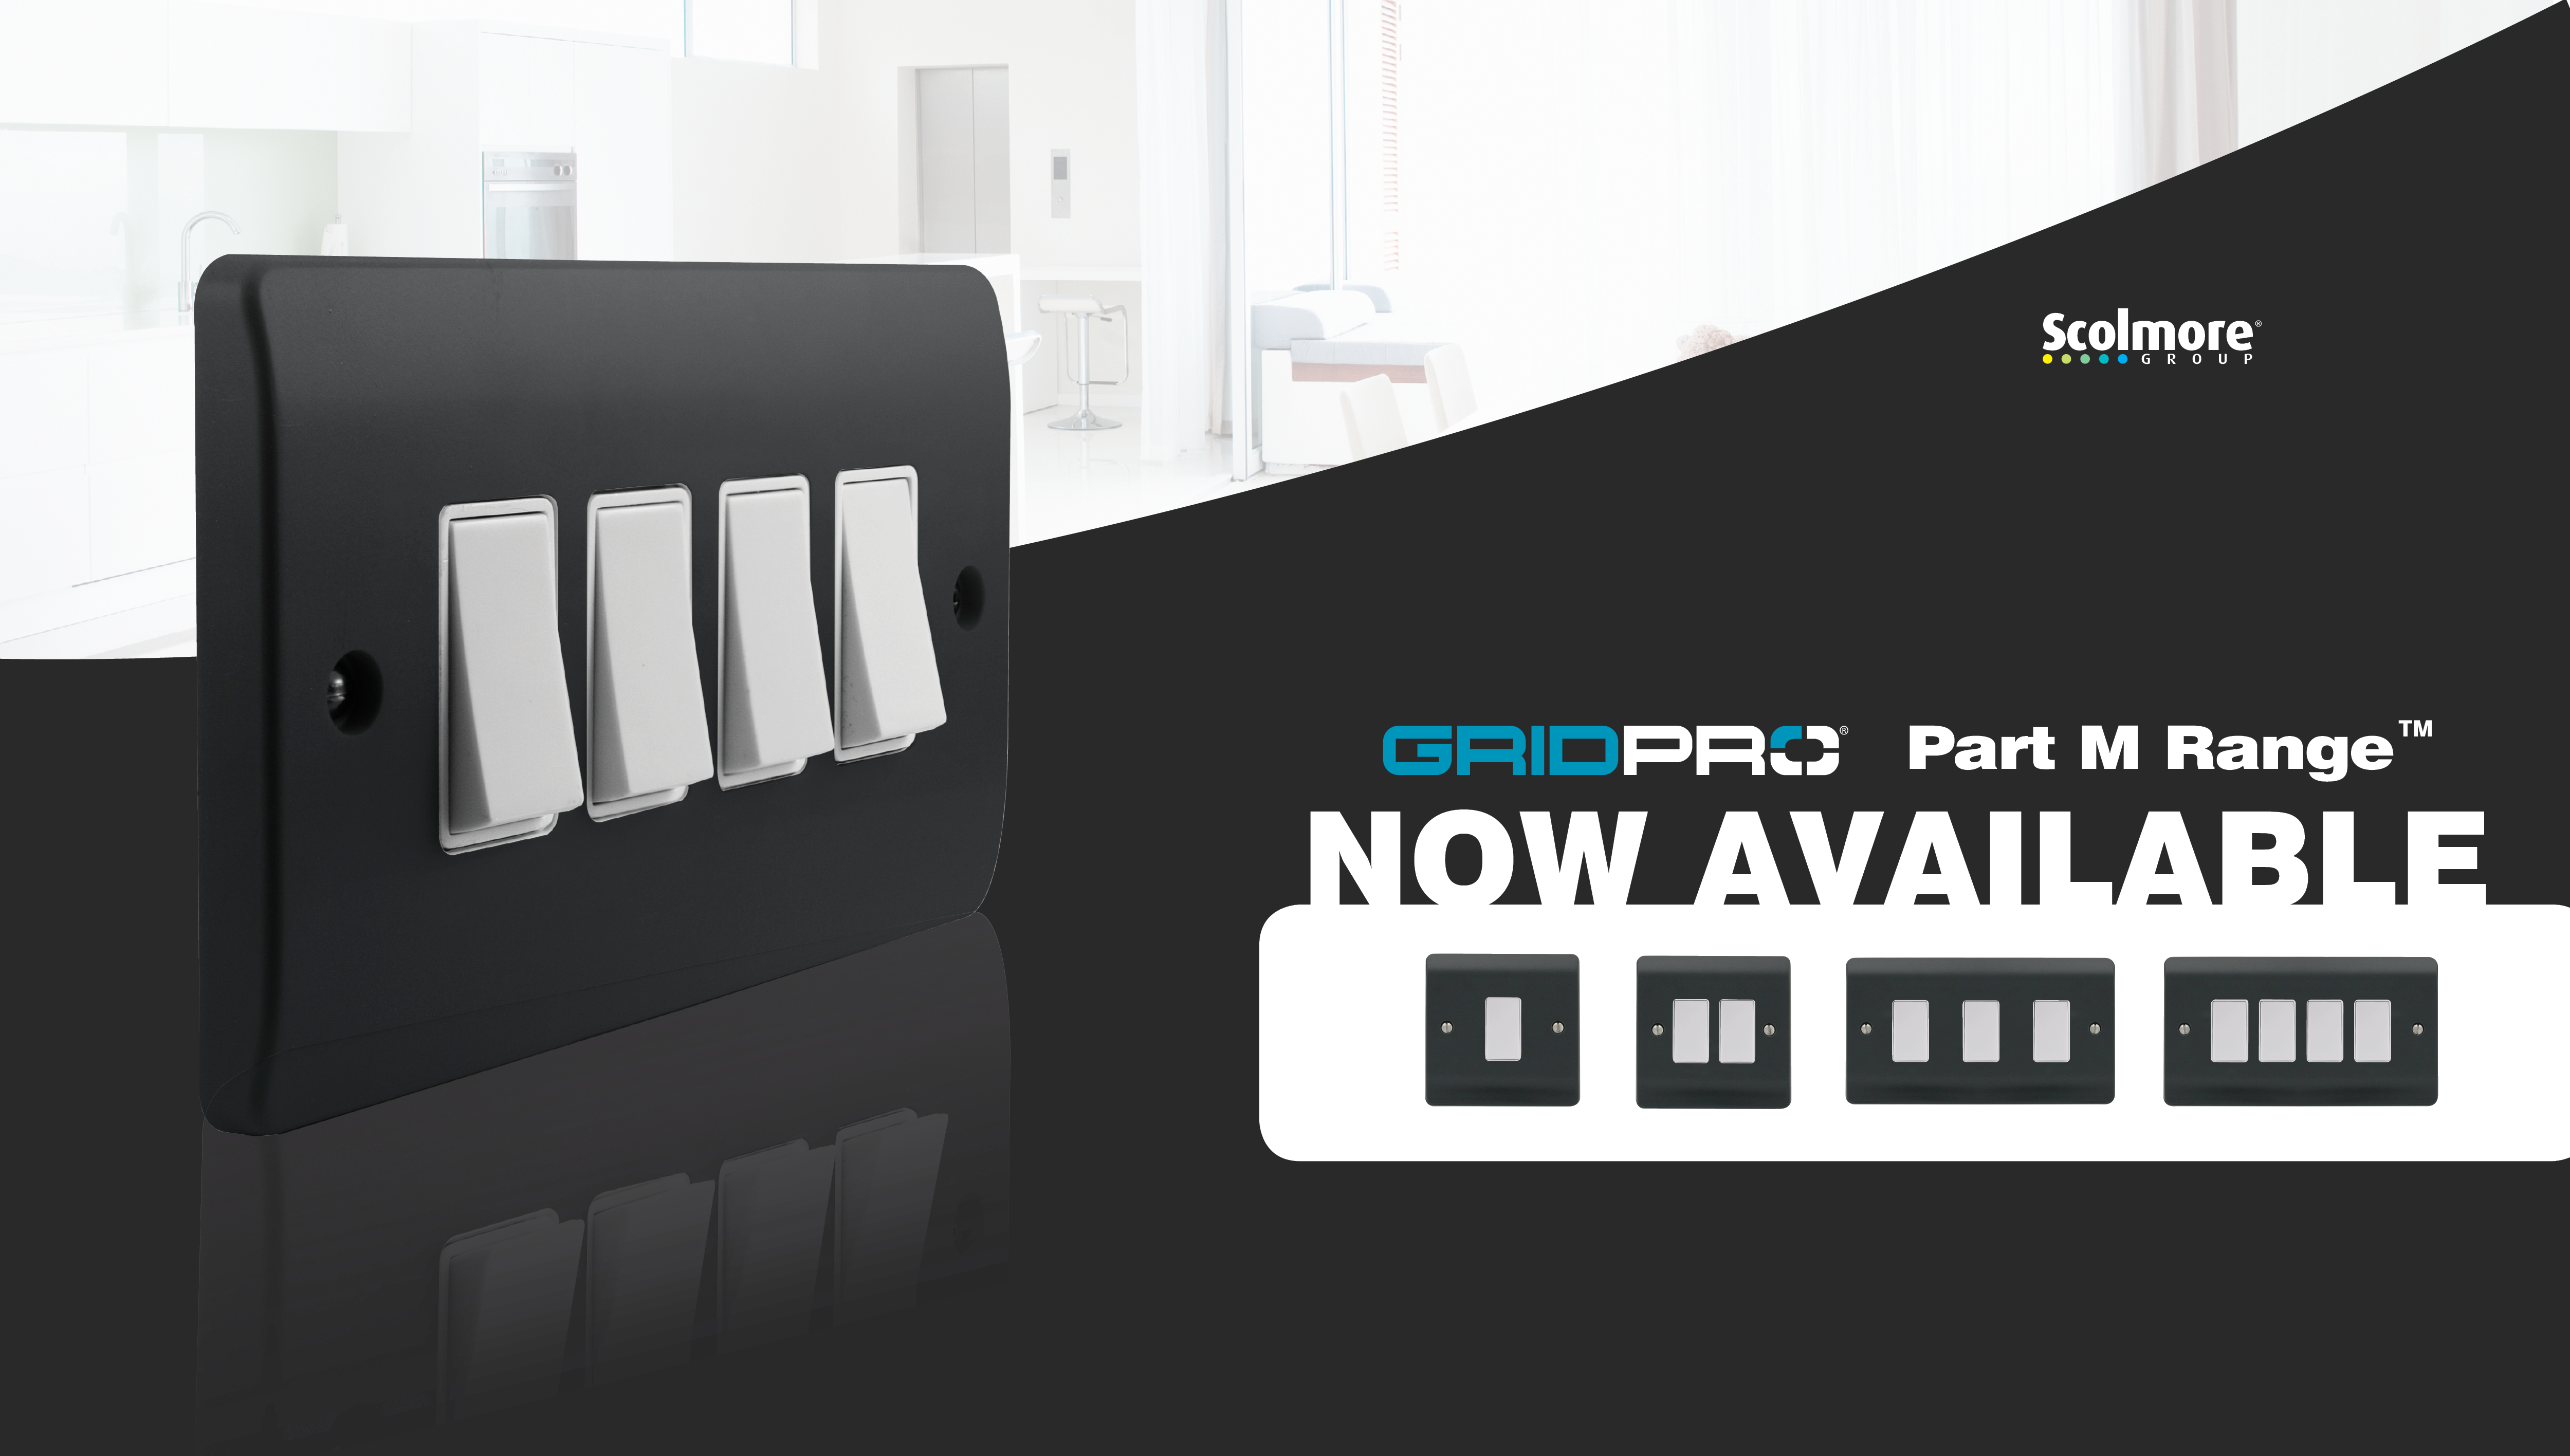 New Part M additions for GridPro